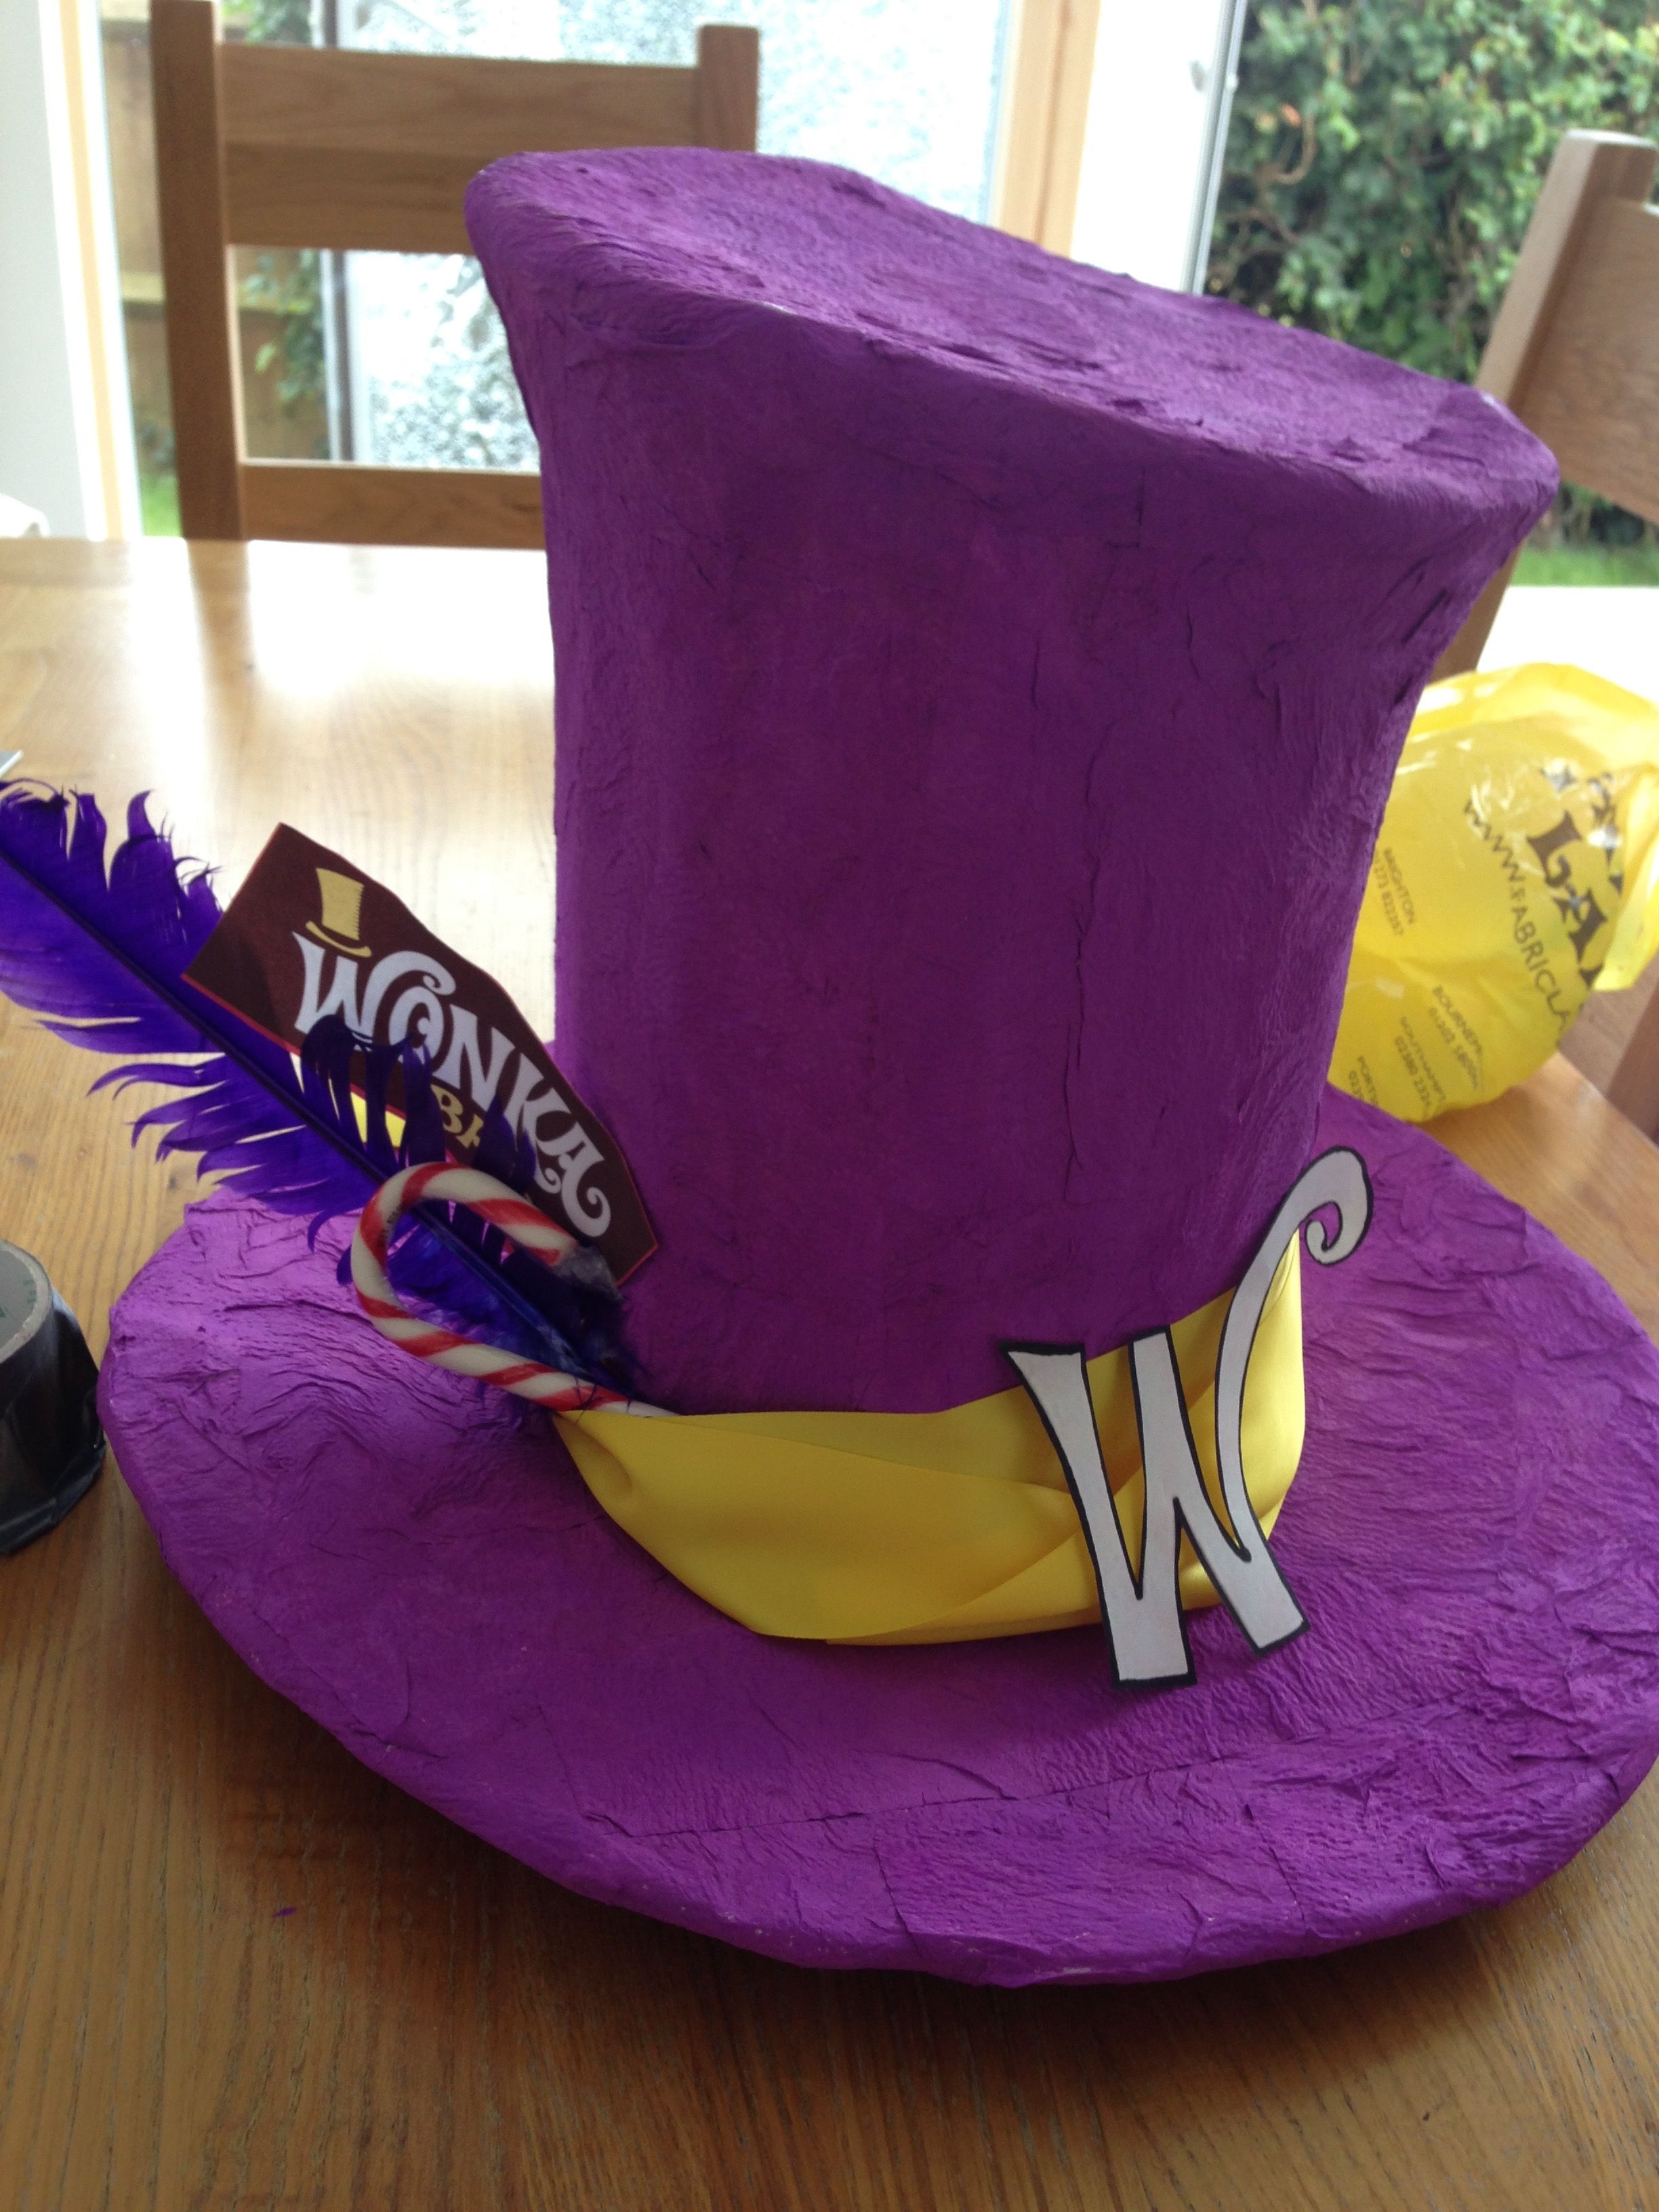 DIY Willy Wonka Hat Charlie and the Chocolate Factory Cardboard ...